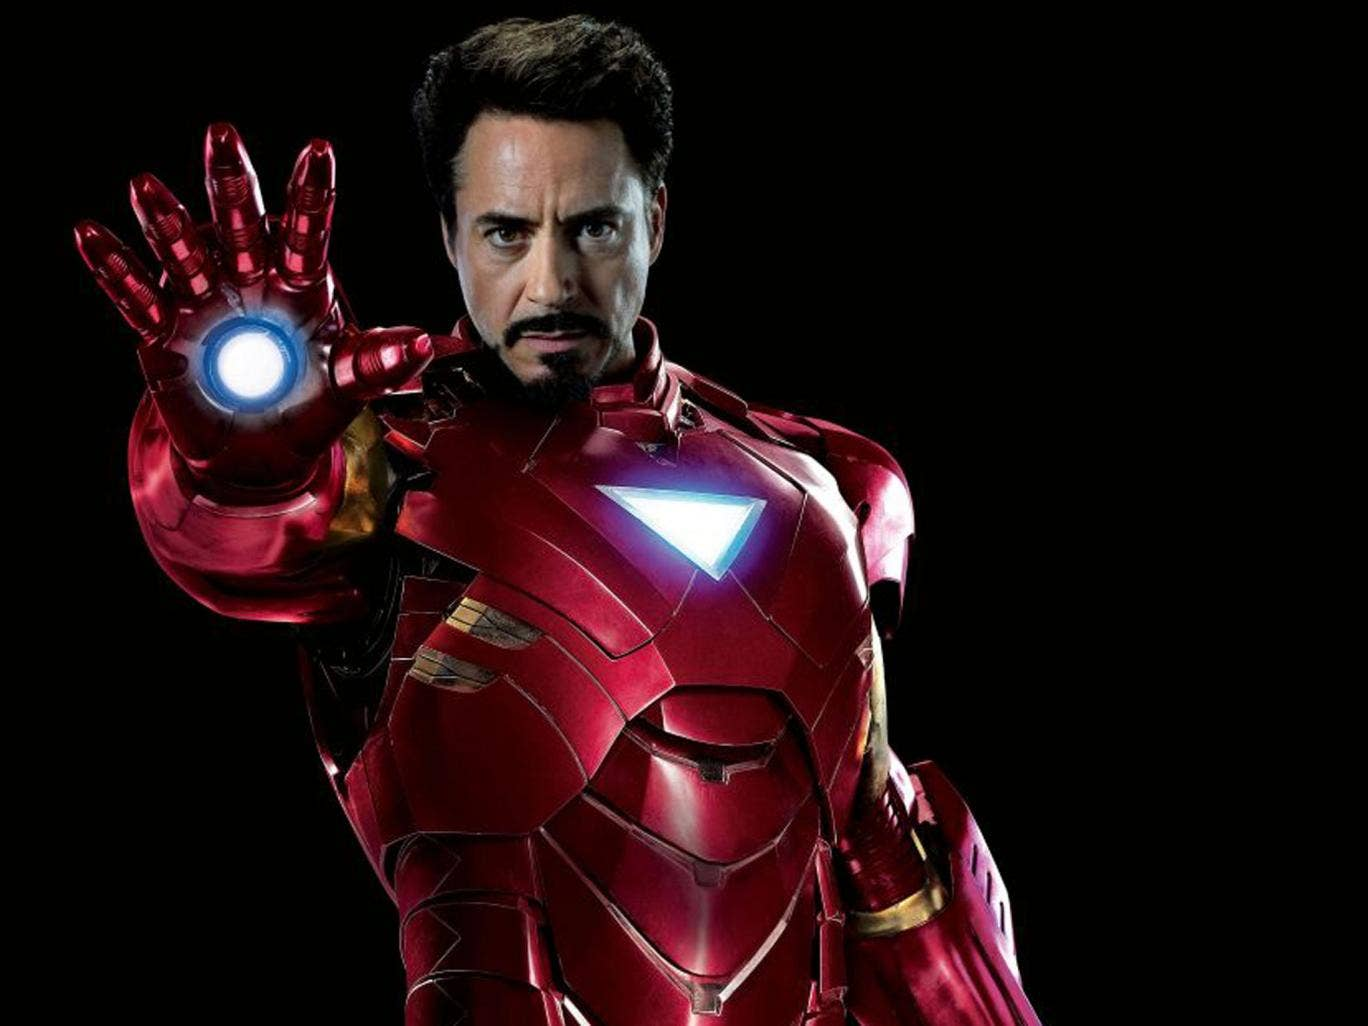 <p><strong>Iron Man</strong></p> <p>Iron Man began as one of The Avengers in Marvel's comic book series, but is now better known for the film franchise starring Robert Downey Jr. Iron Man started life as American billionaire Tony Stark, who makes a